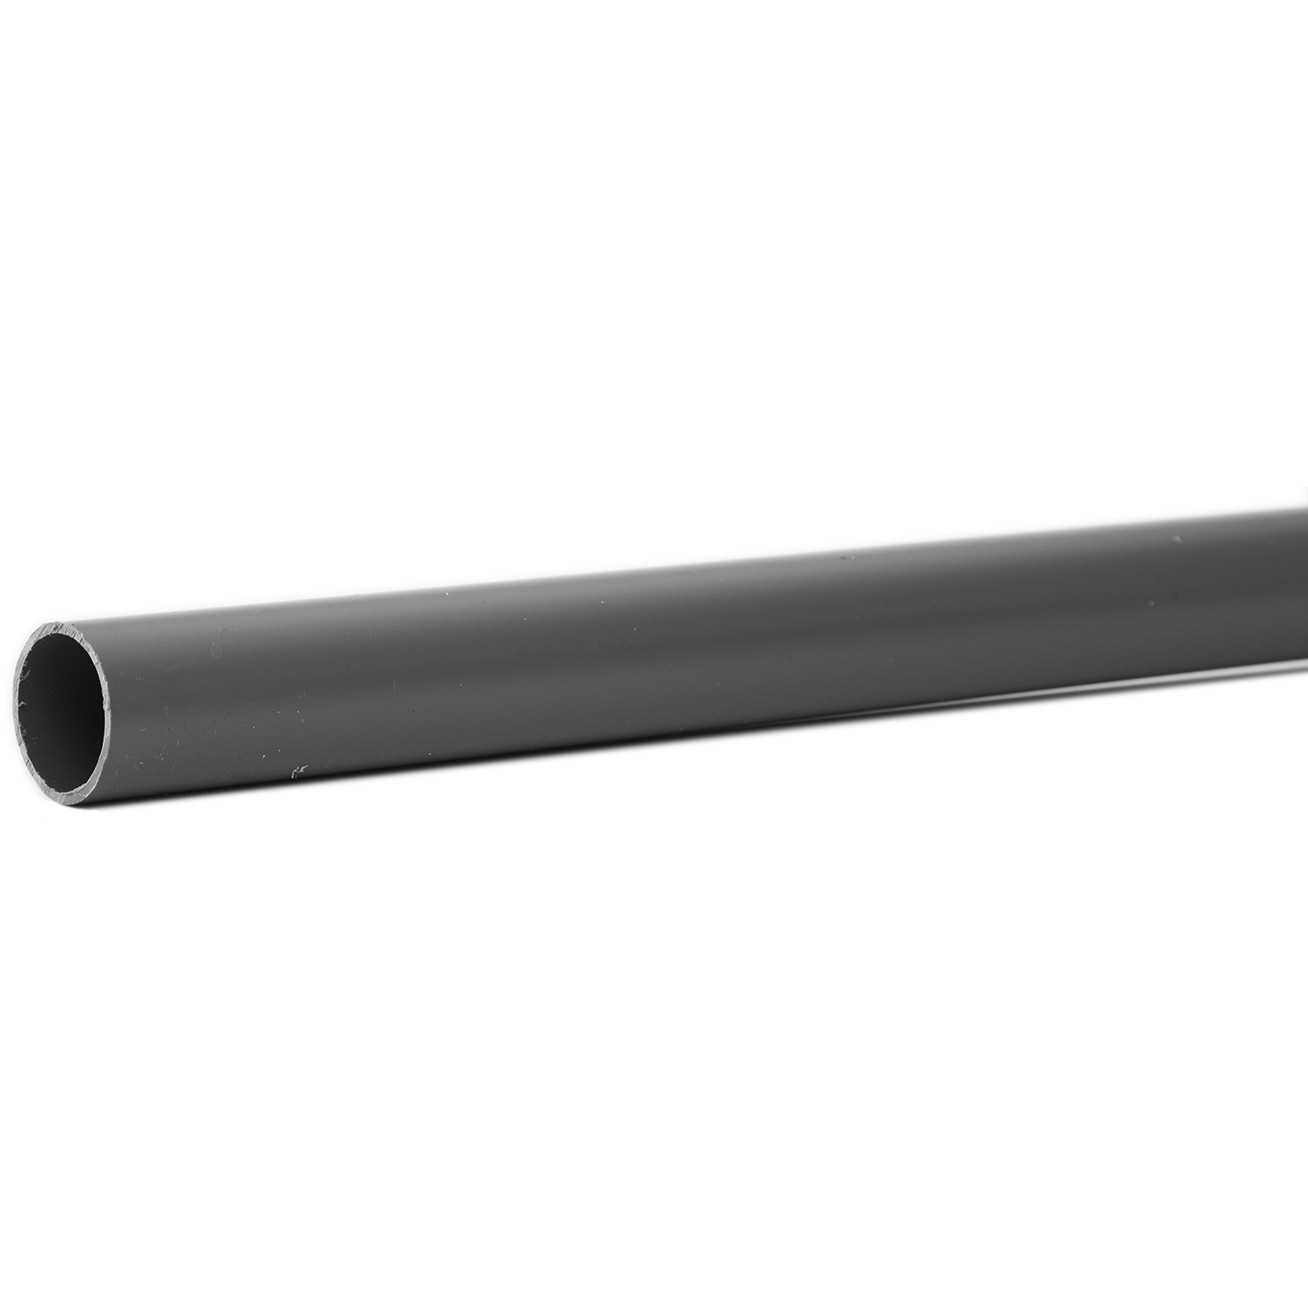 Polypipe 32mm Solvent Weld Waste Pipe - Grey, 3 metre